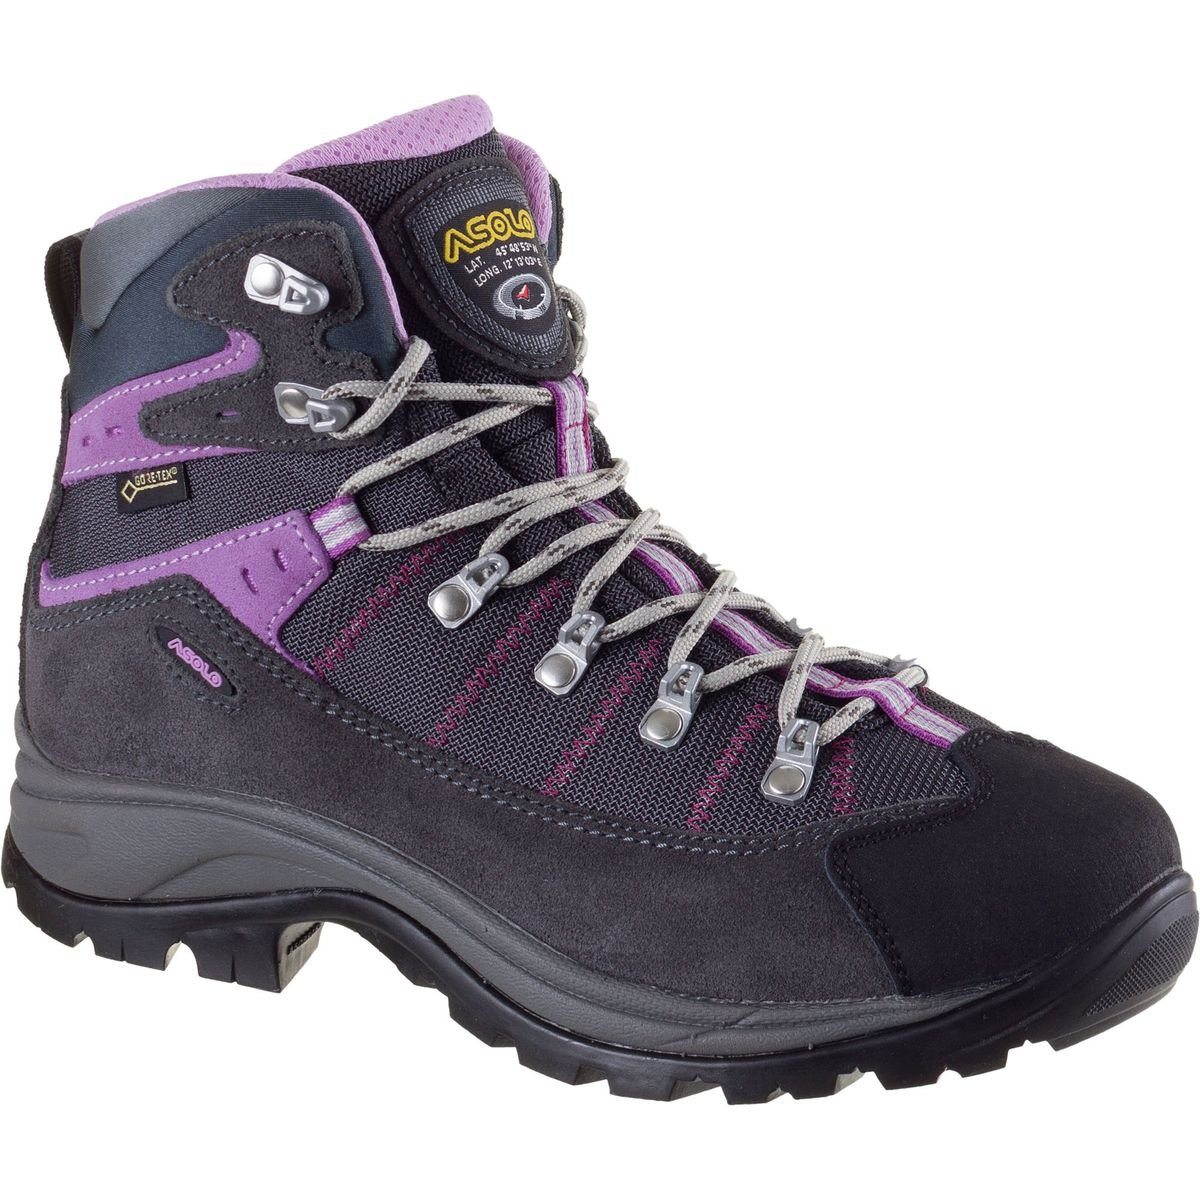 Asolo Women's Revert GV Hiking Boot B00DWWDVB8 10 B US|GUNMETAL